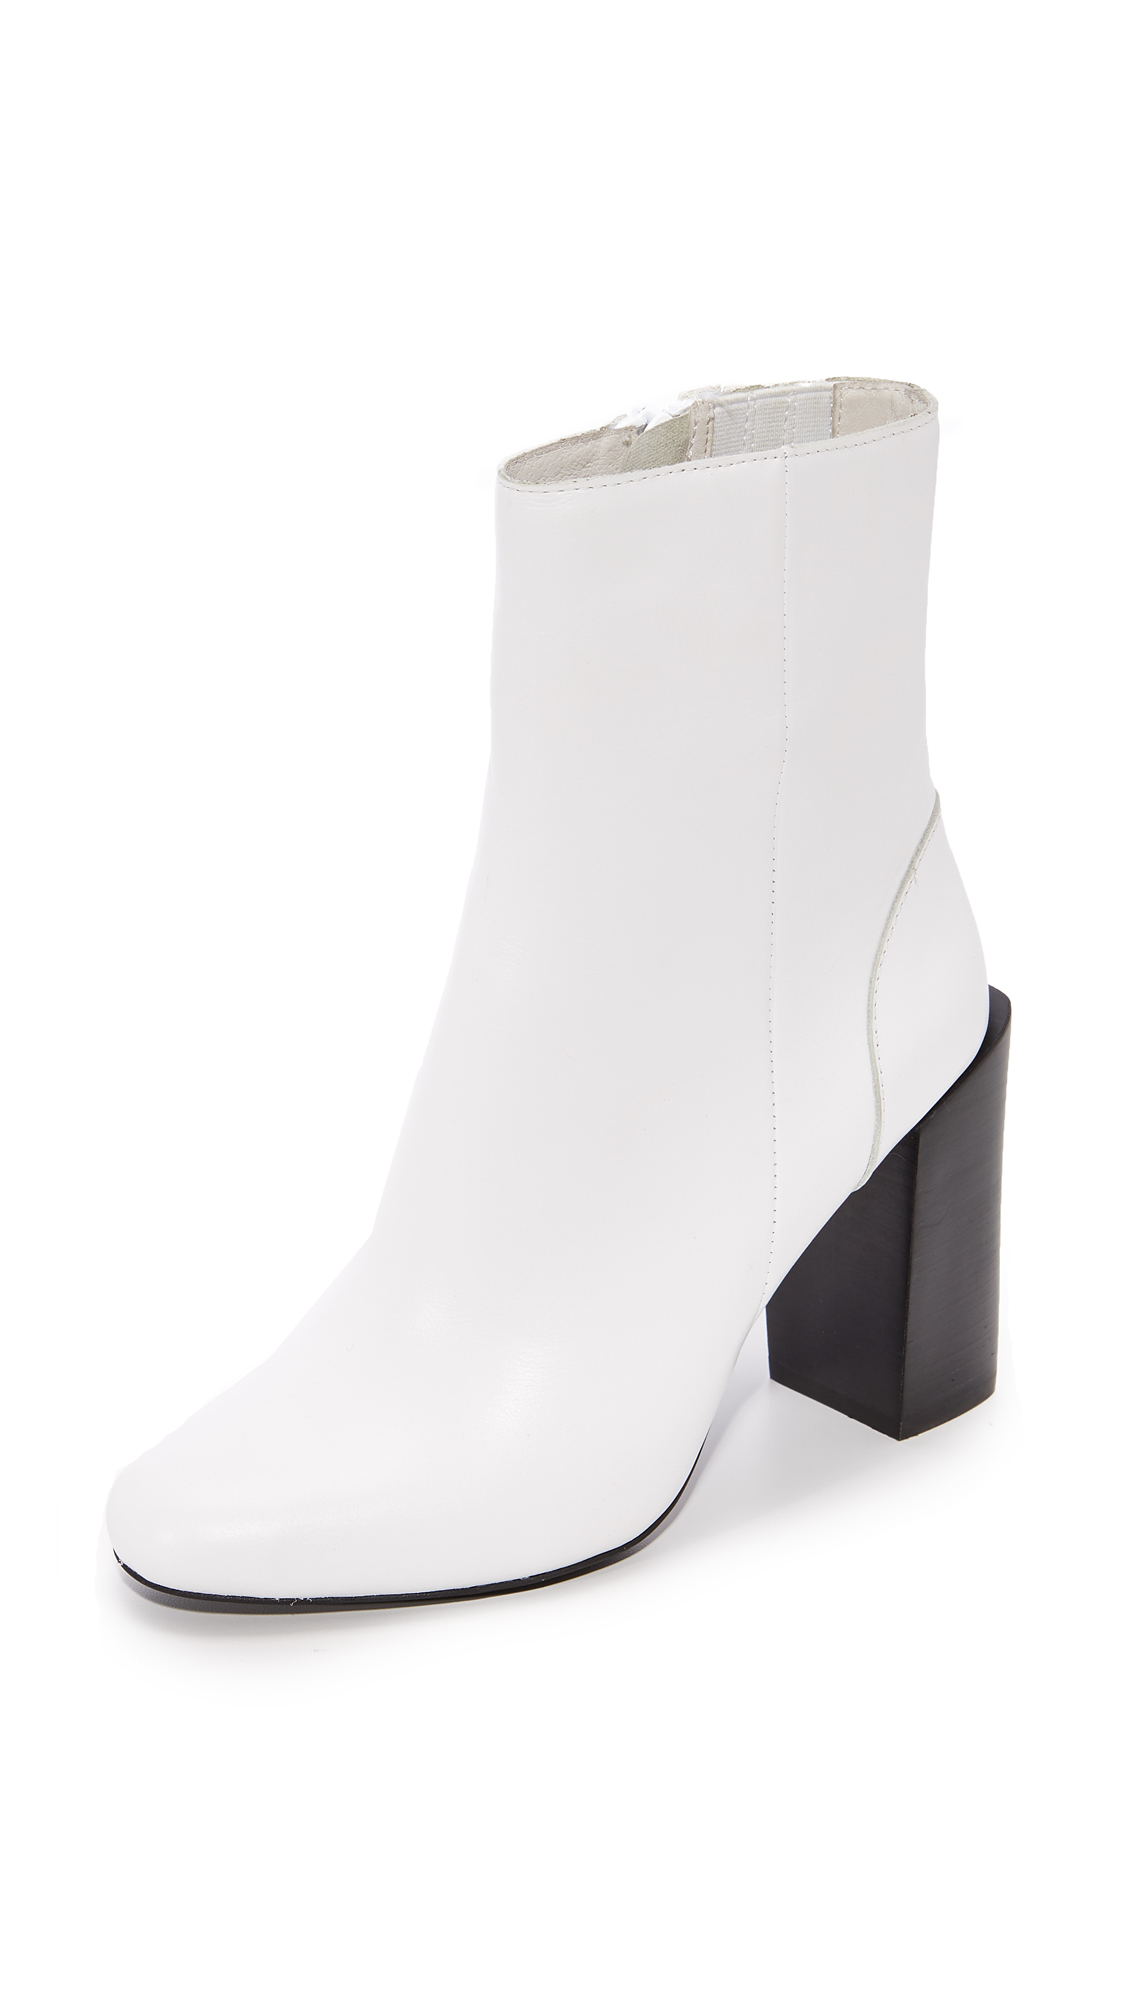 Jeffrey Campbell Stratford Stacked Heel Booties - White